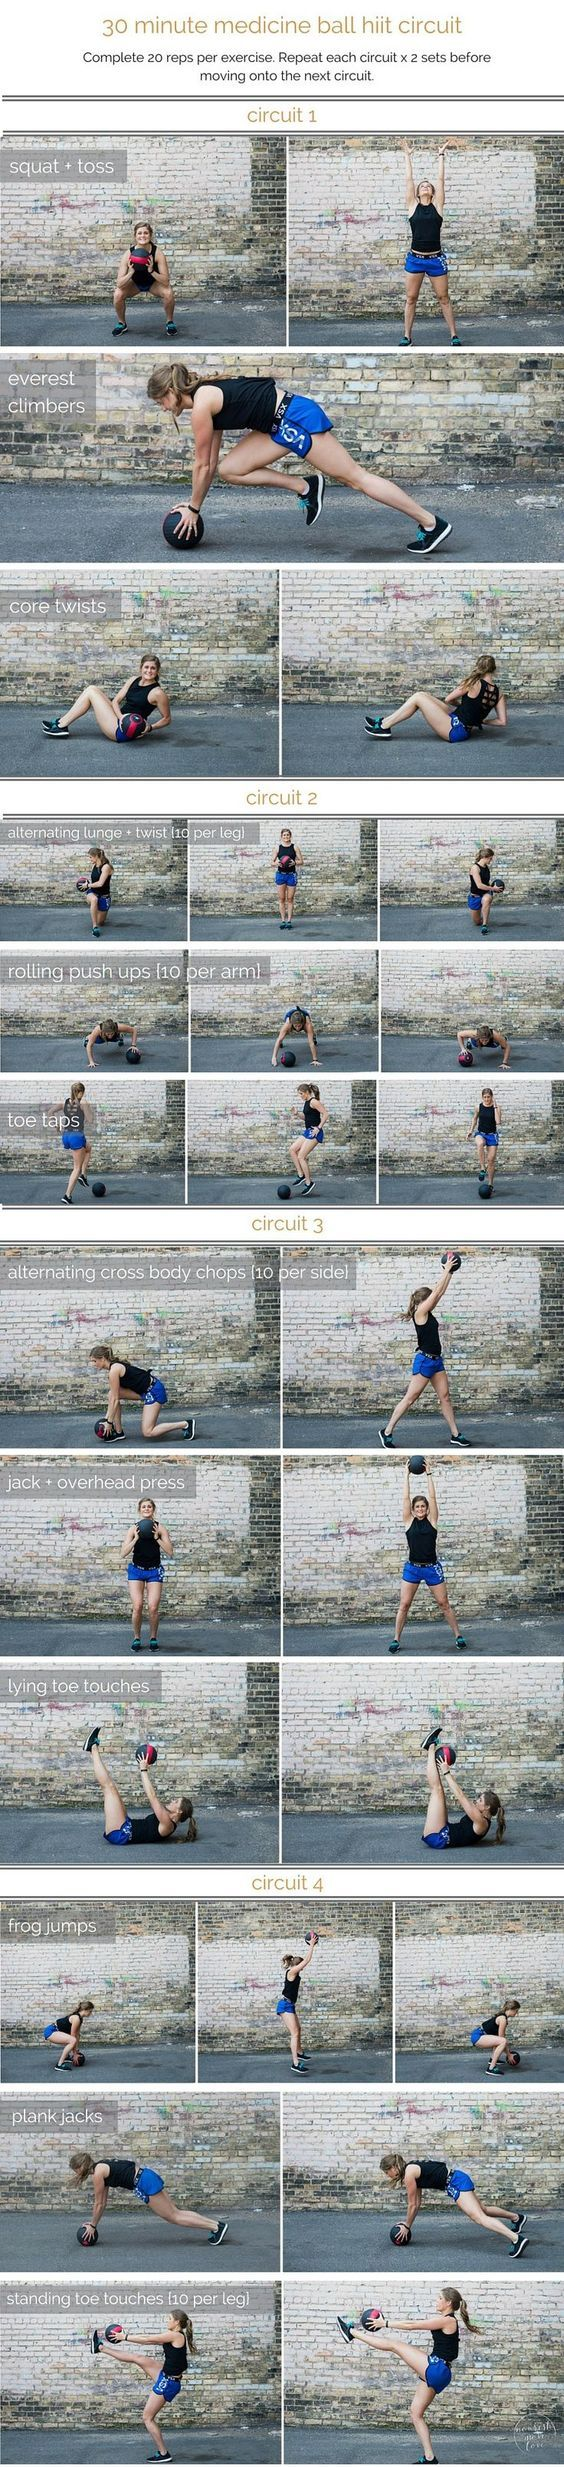 medicine ball hiit circuit workout | combine cardio, strength and stability in this medicine ball hiit circuit, a total body workout that you can do in 30 minutes or less. | http://www.nourishmovelove.com